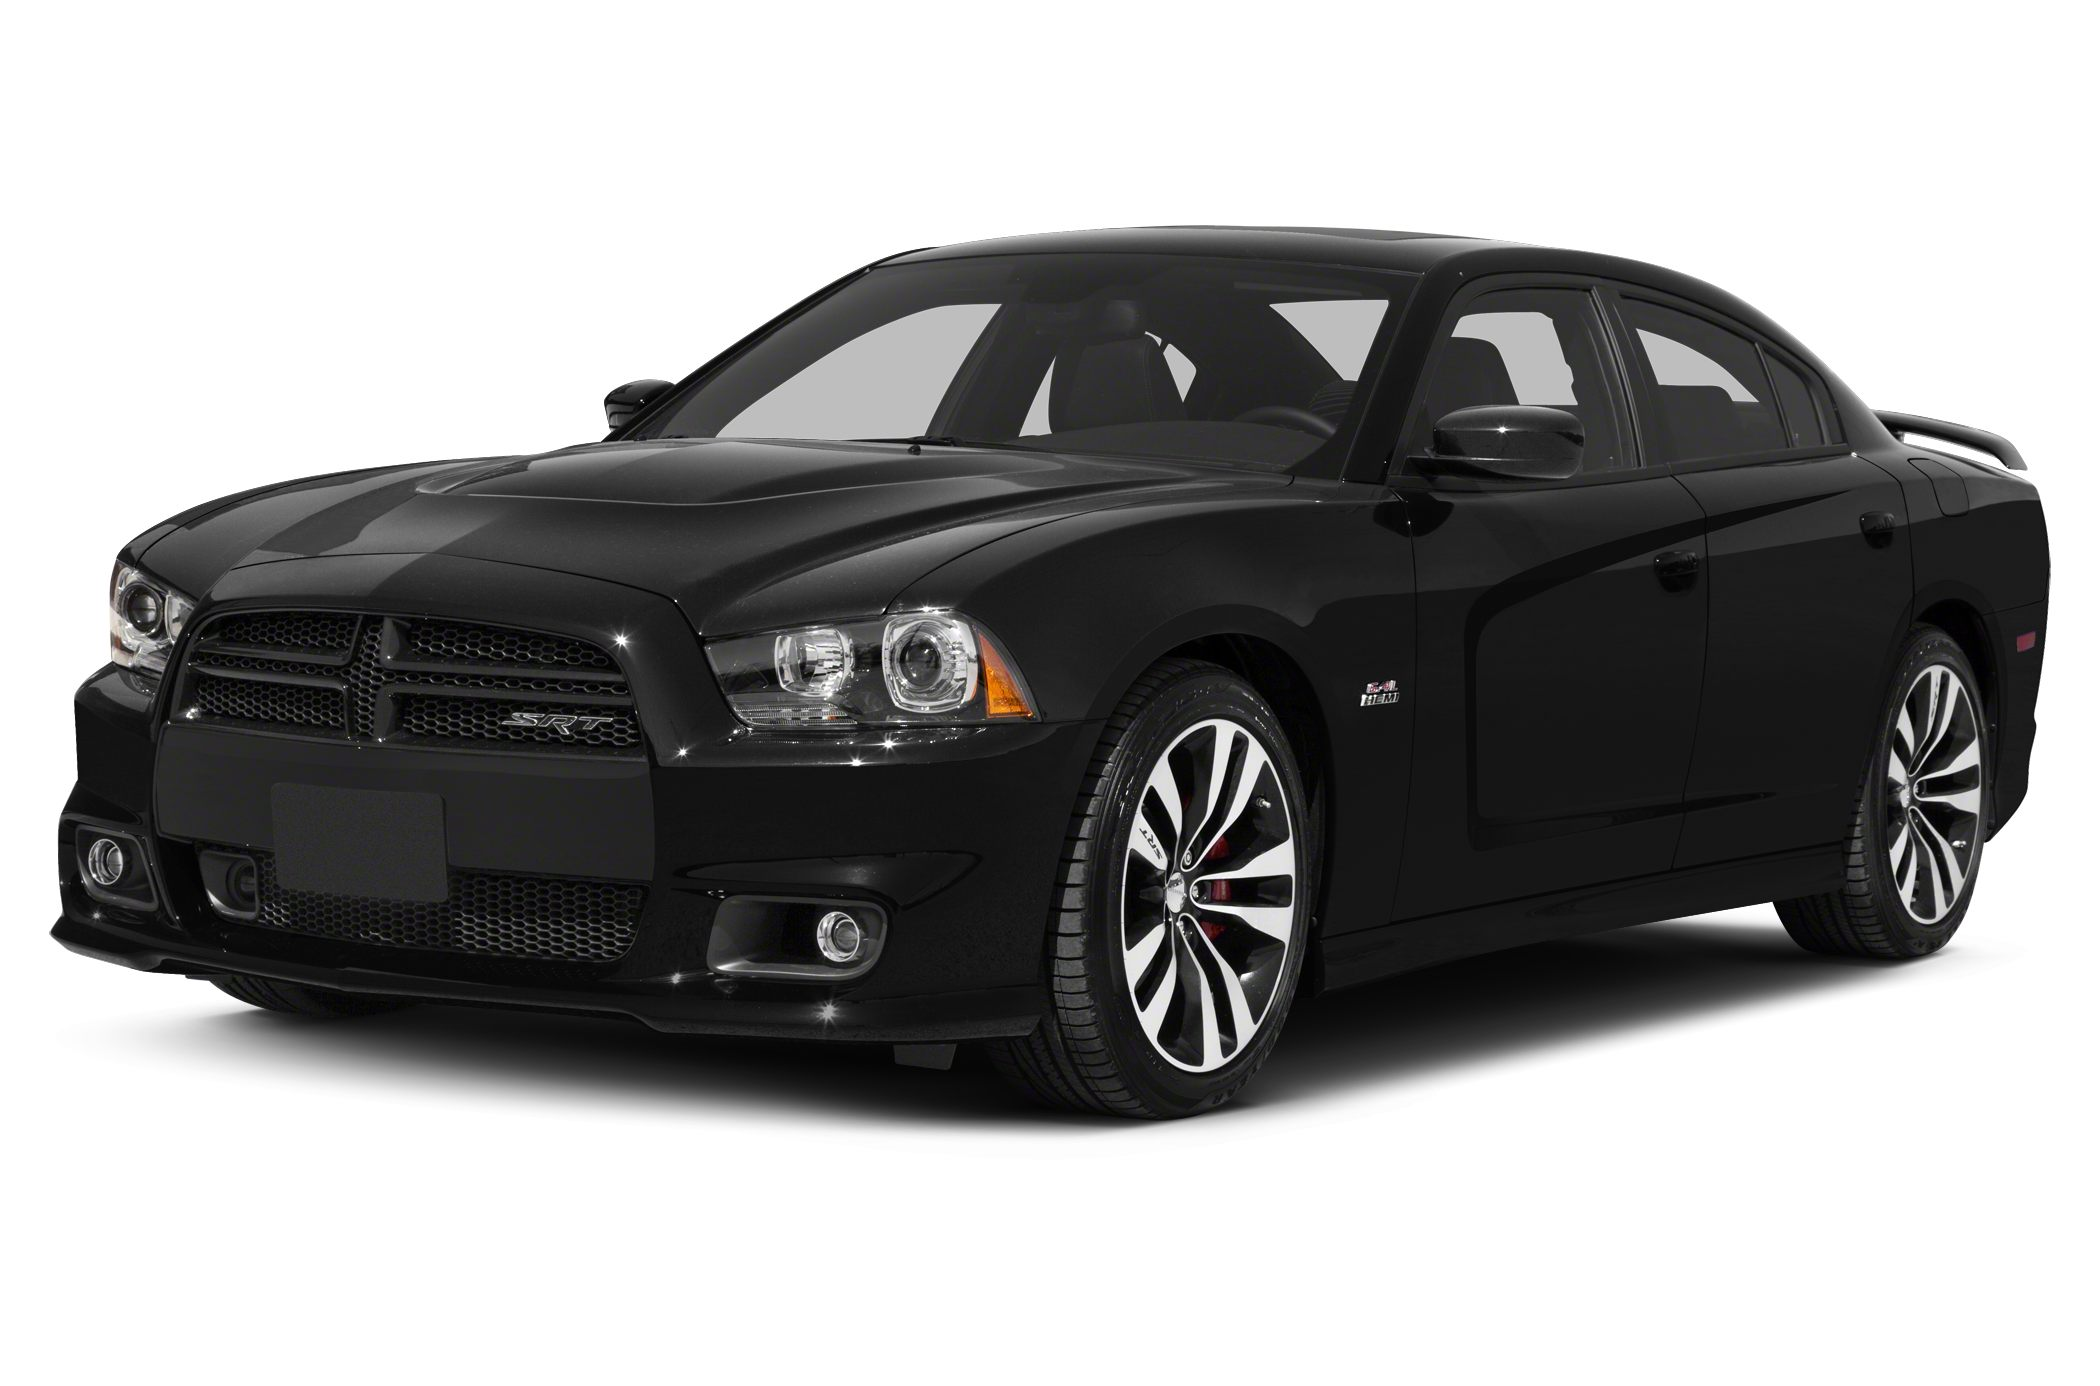 2013 Dodge Charger SRT8 4dr Rearwheel Drive Sedan Pricing and Options